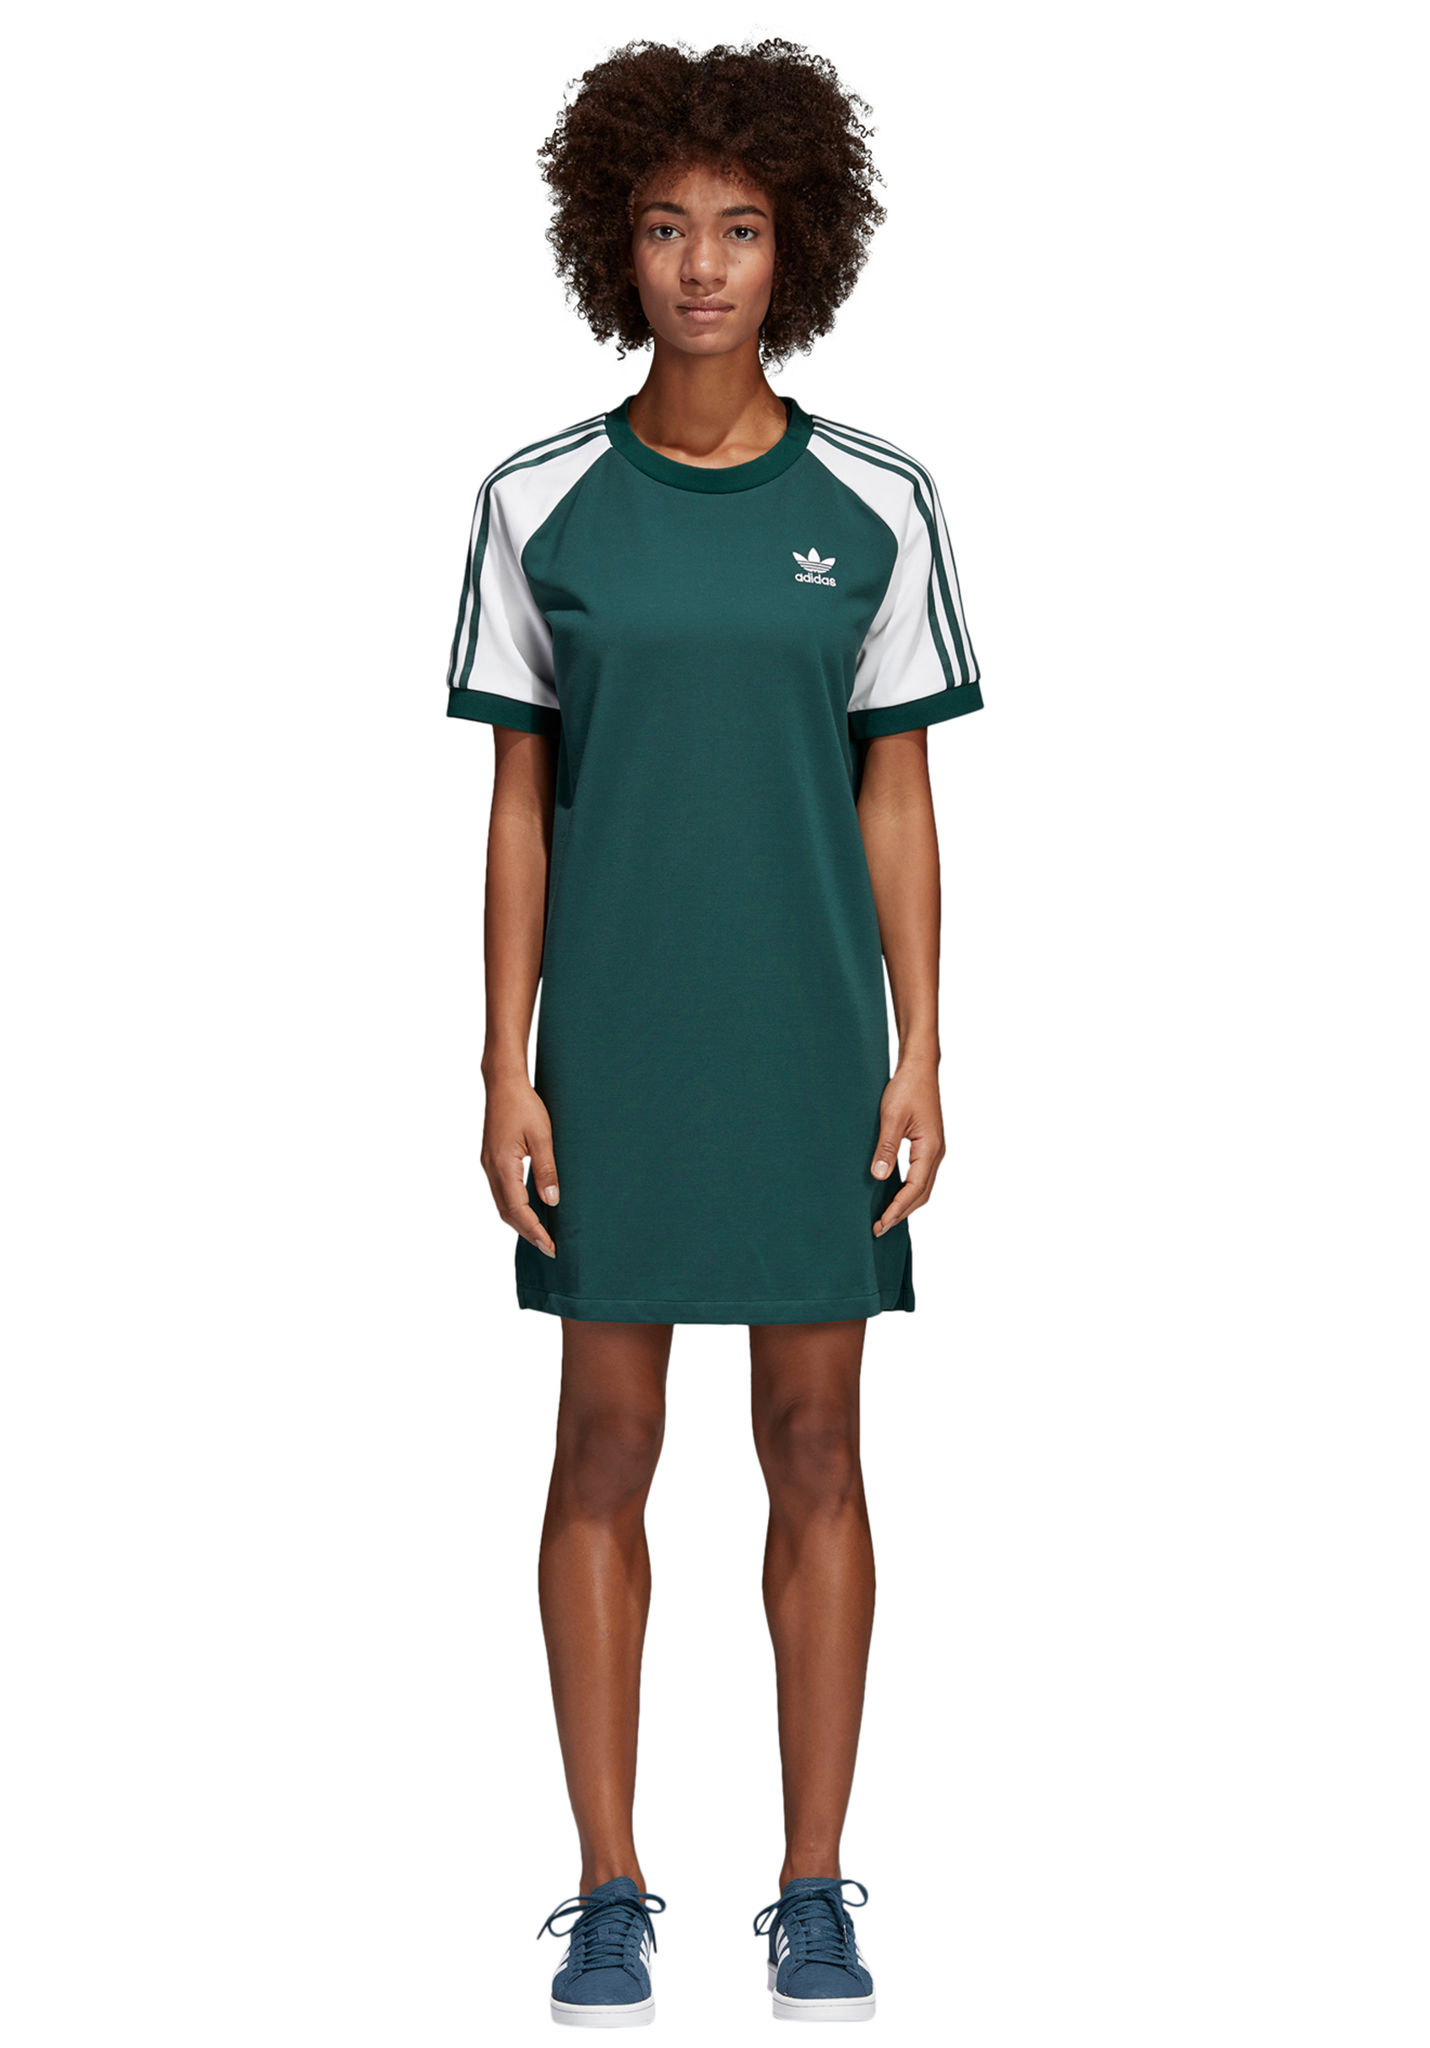 ADIDAS ORIGINALS Raglan - Dress for Women - Green